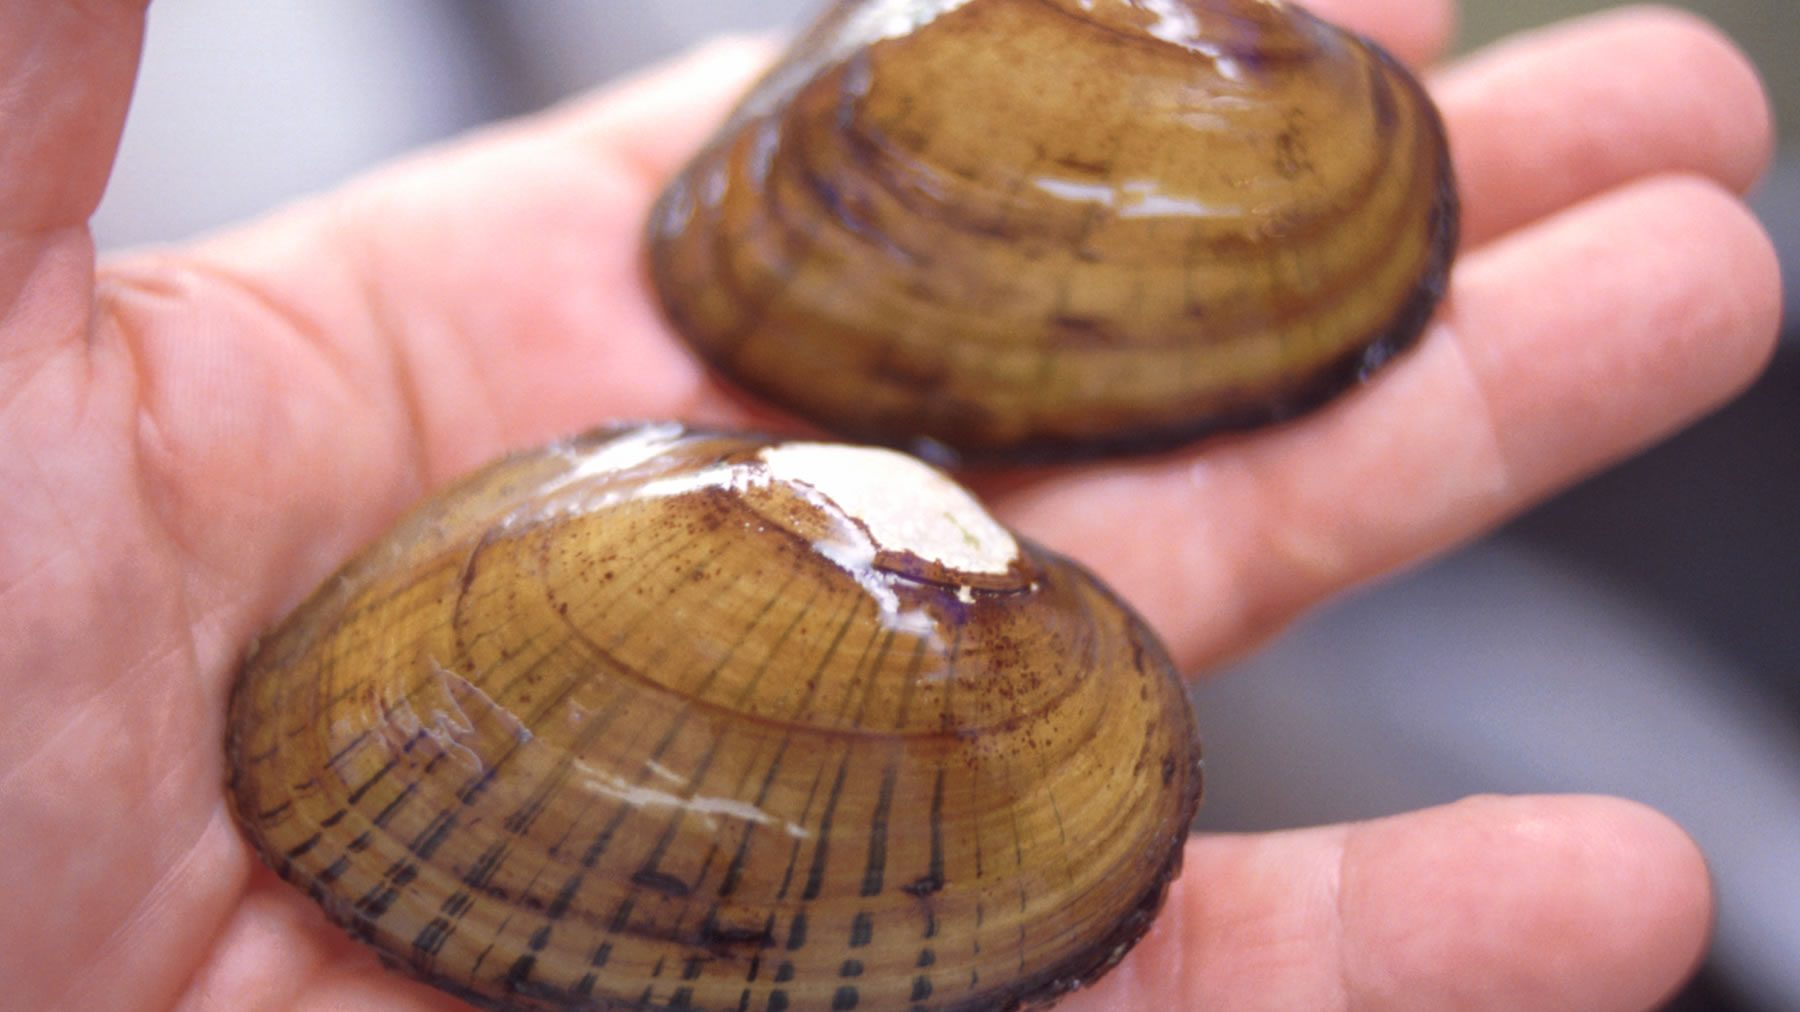 Evolution has come up with some clever tricks when it comes to mussel reproduction.